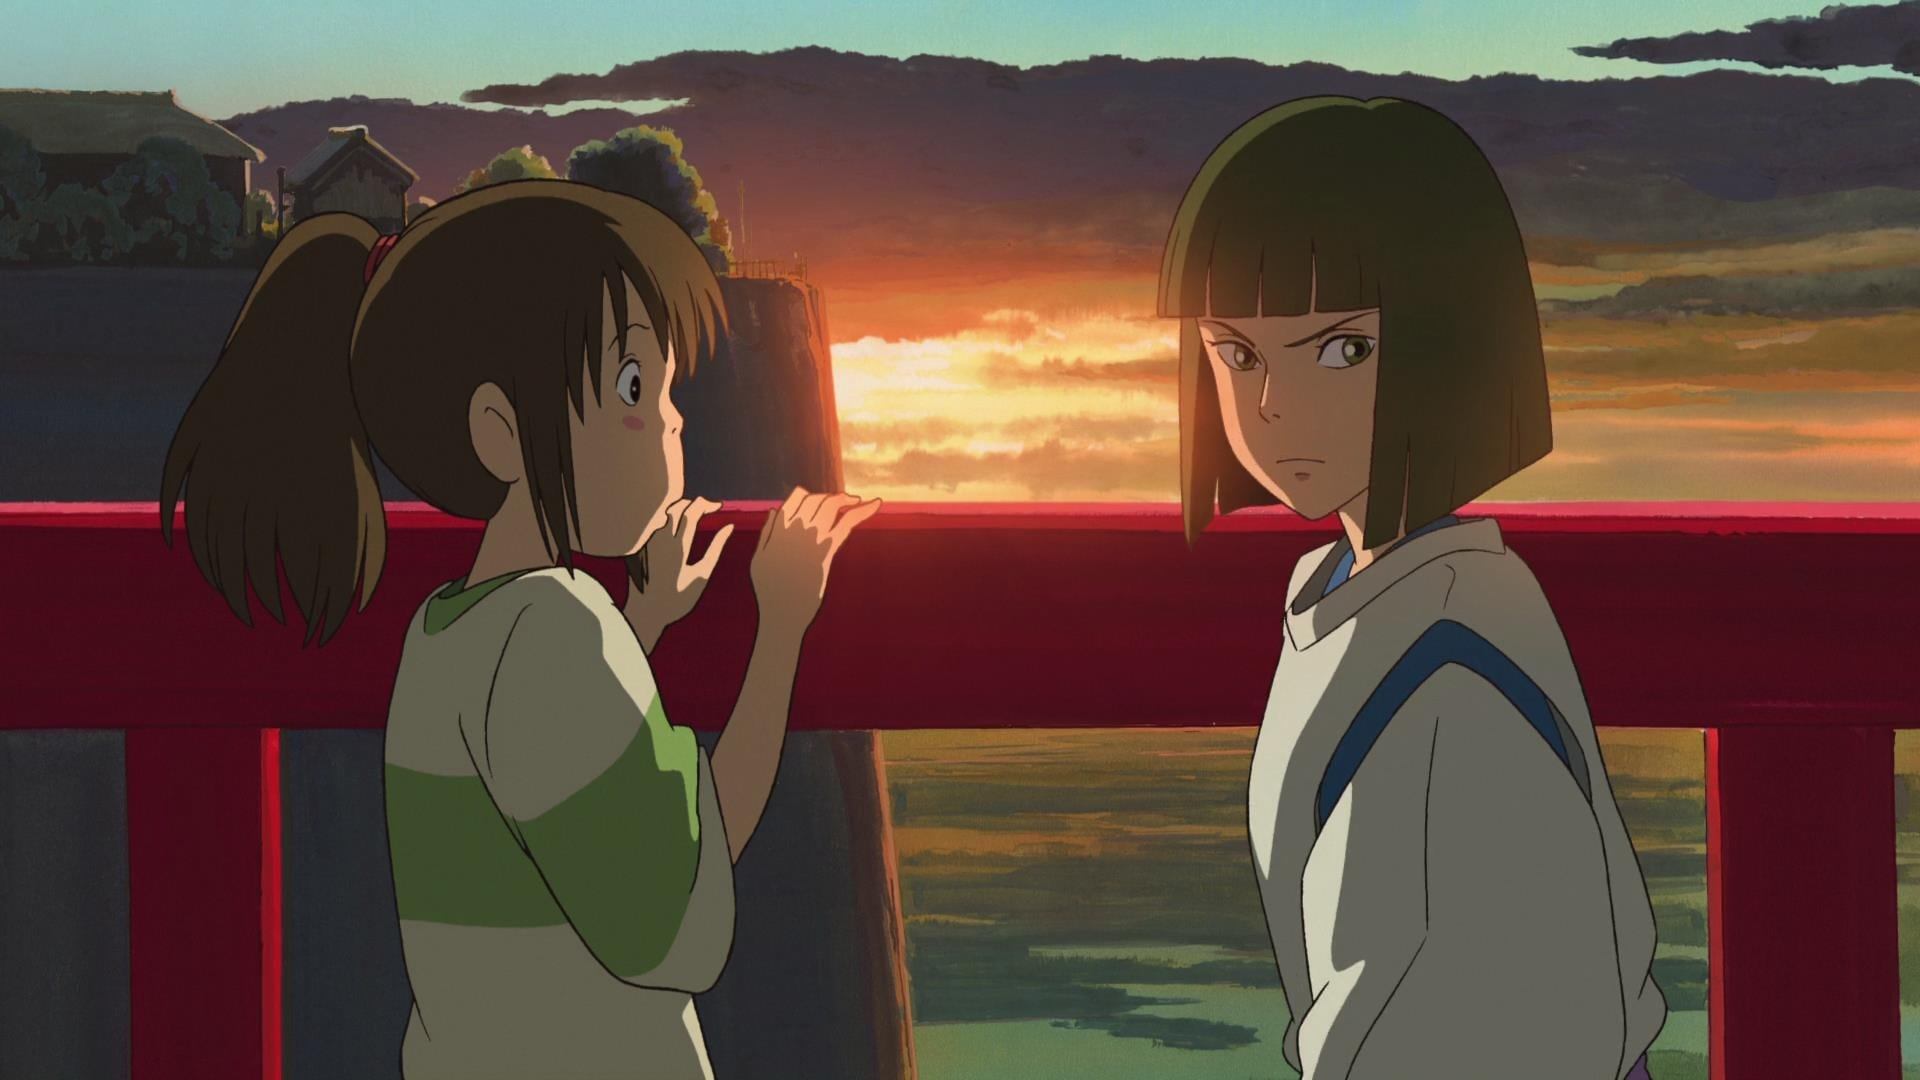 Watch Spirited Away (2001) Full Movie Online Free | Stream Free Movies & TV Shows